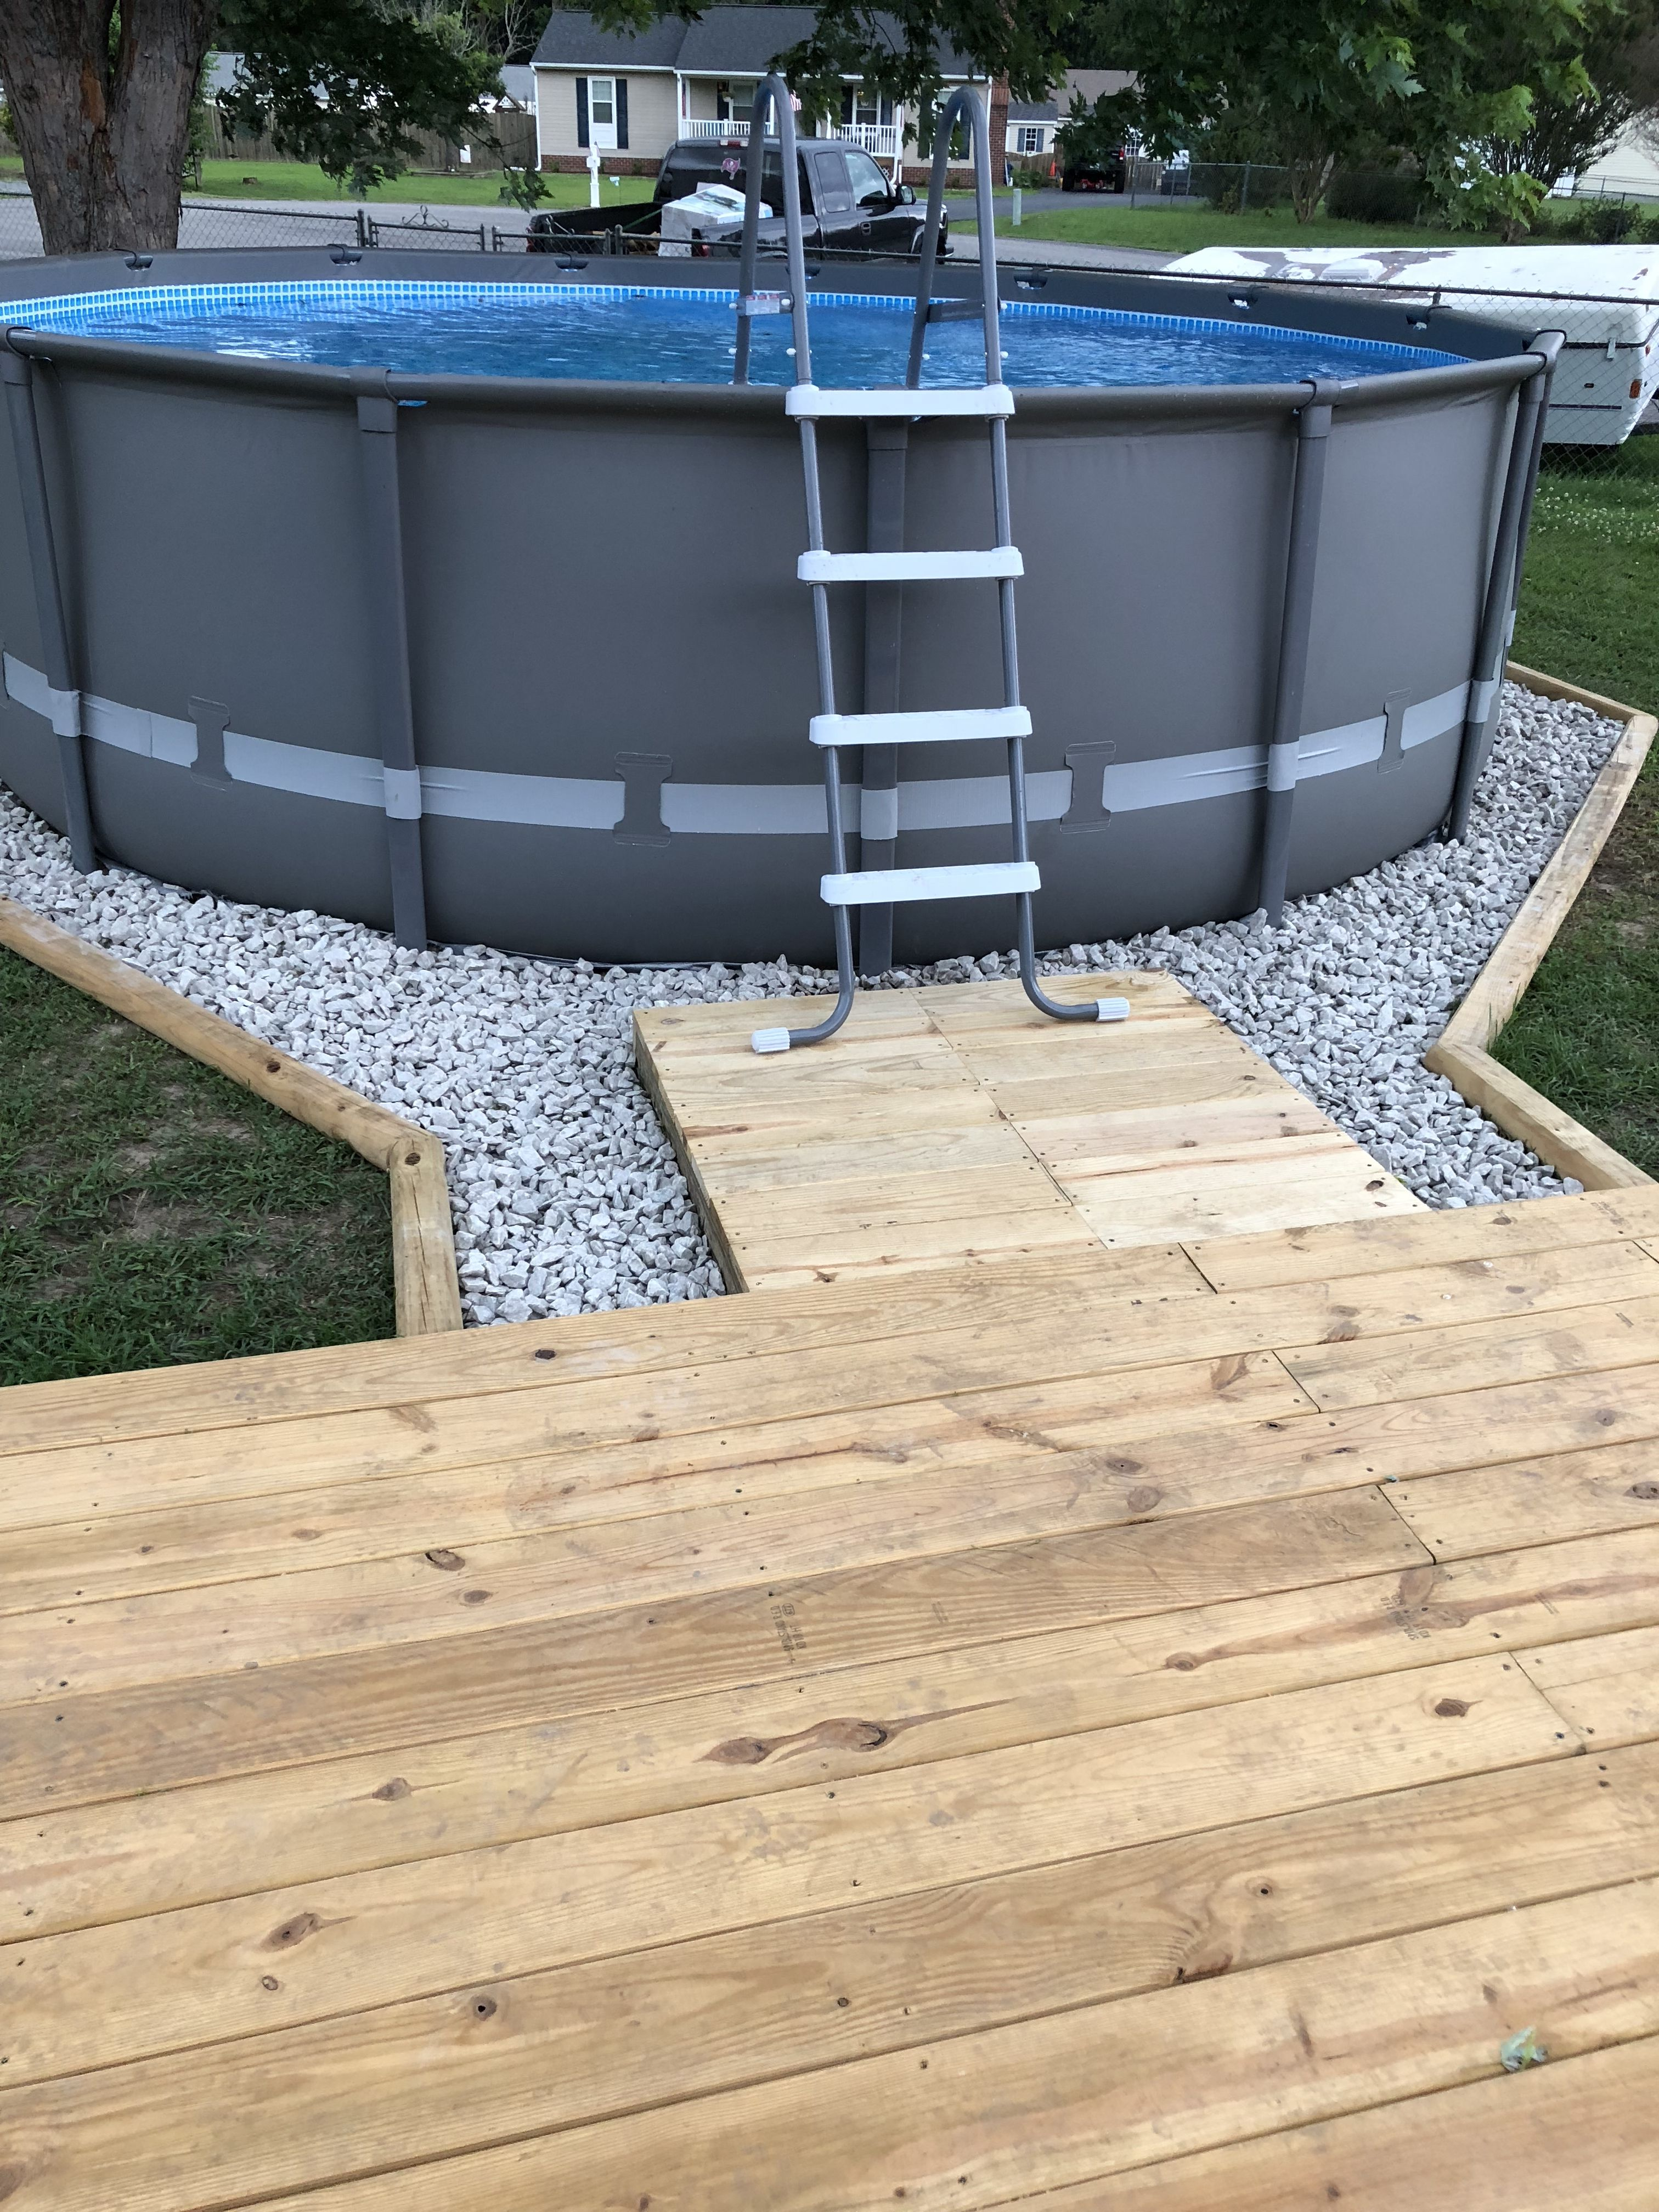 Our intex pool landscape project 😍 | Backyard in 2019 ...